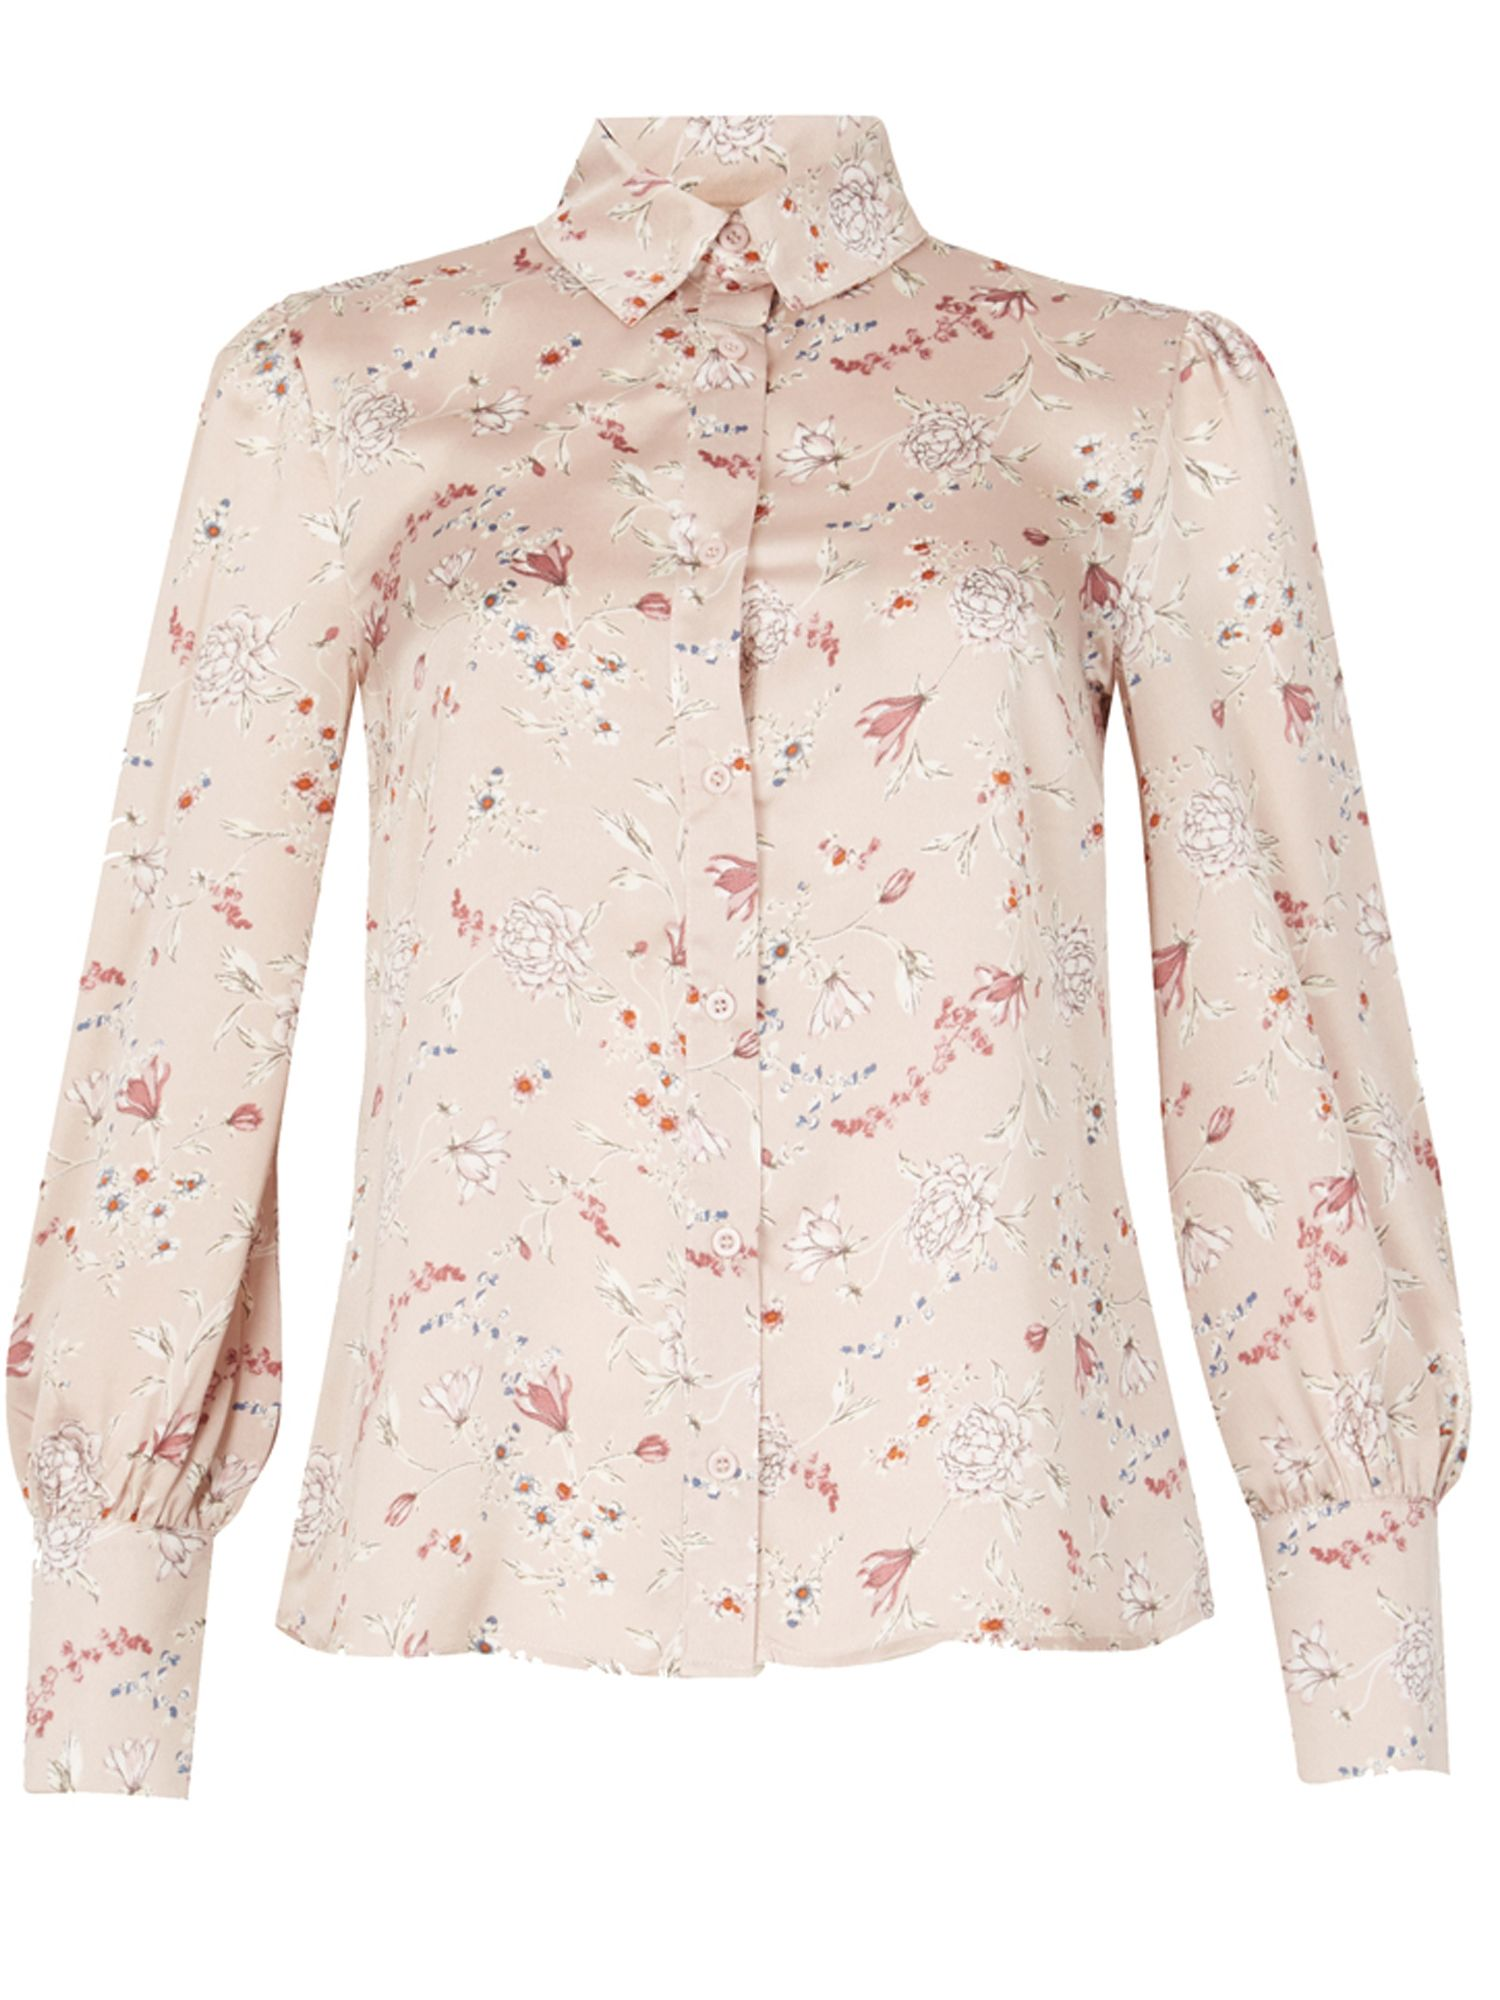 MISSTRUTH Floral Print Long Sleeve Blouse, Brown